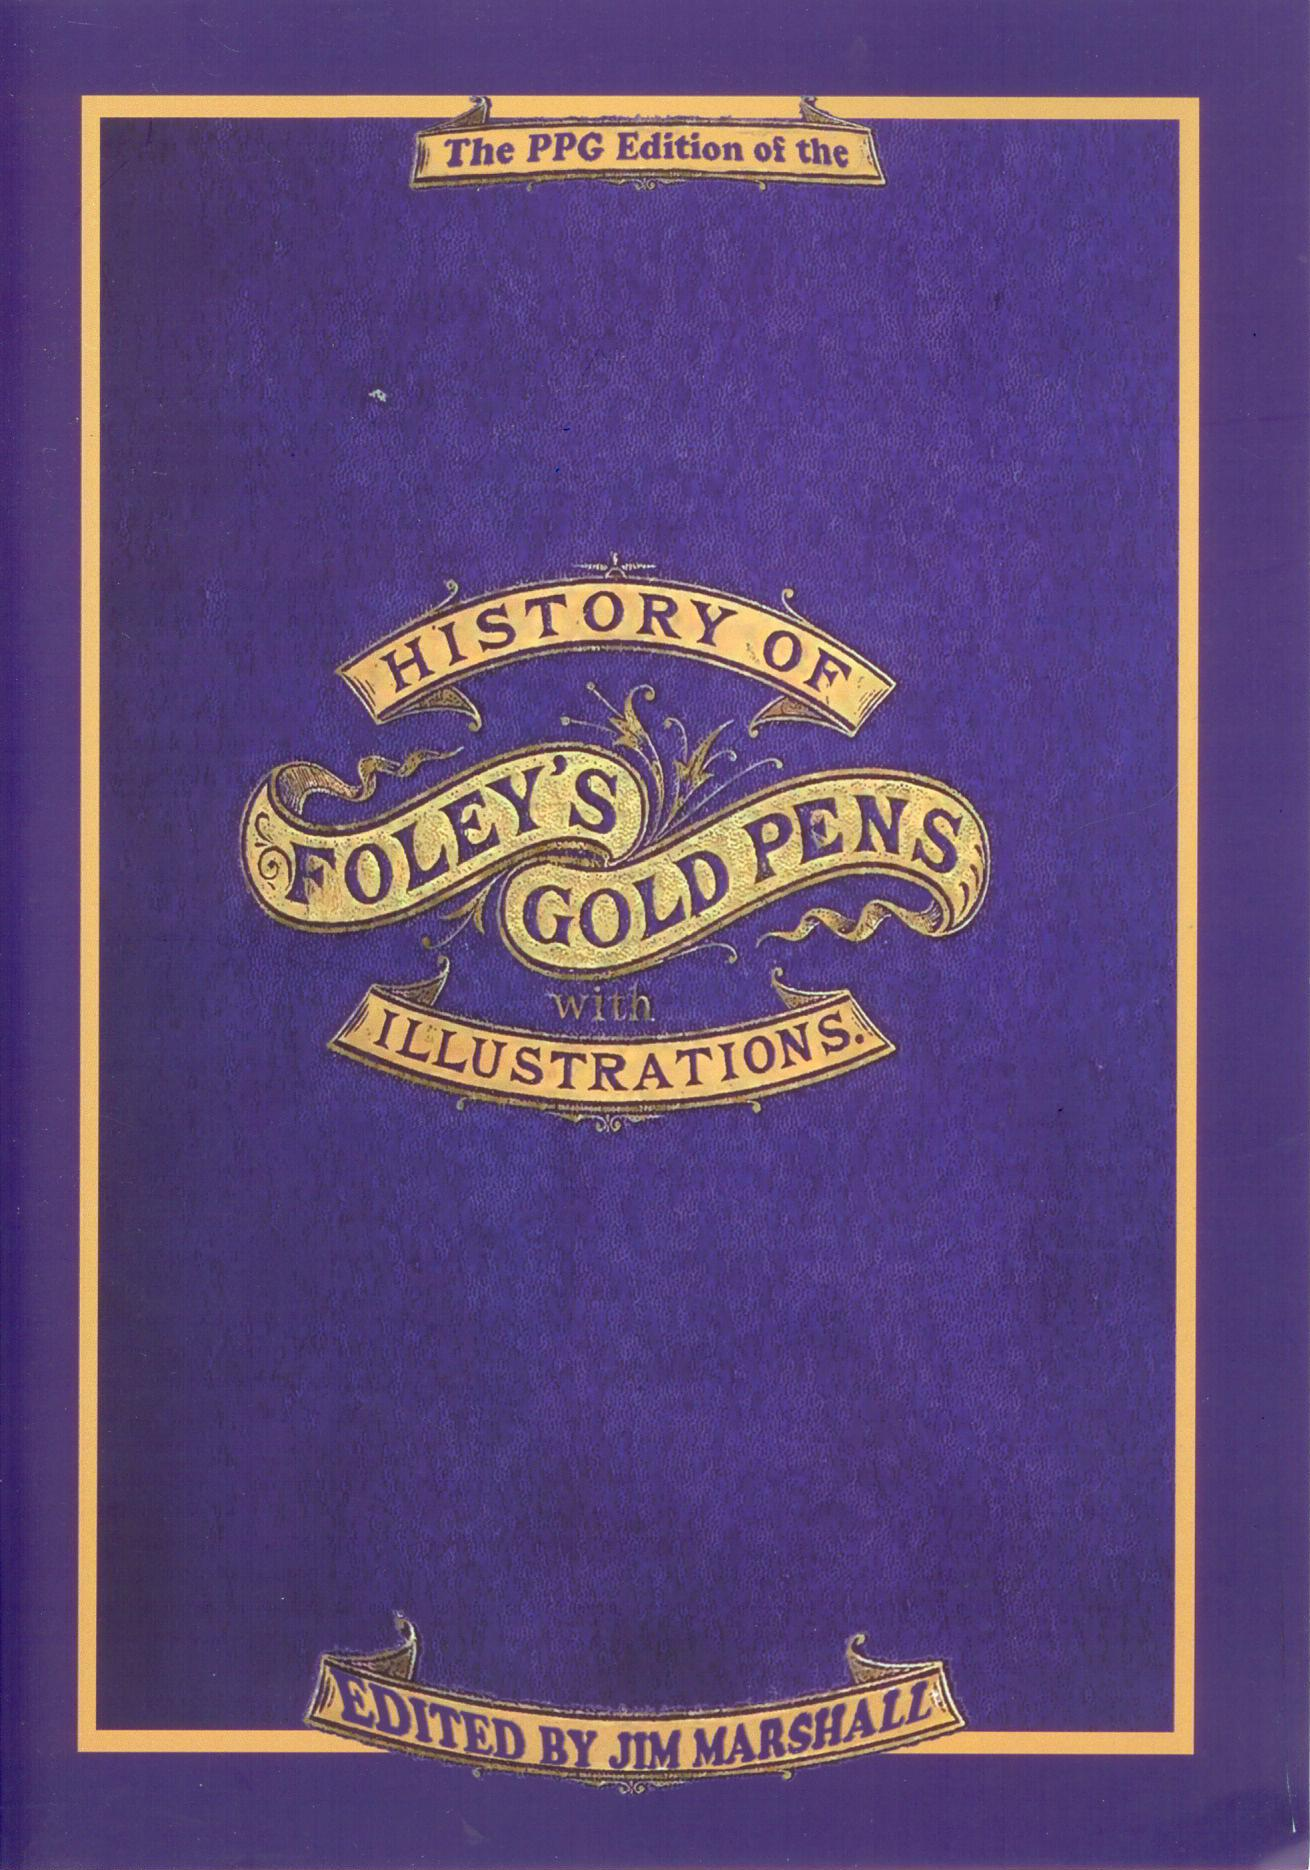 History of Foley`s Gold Pens